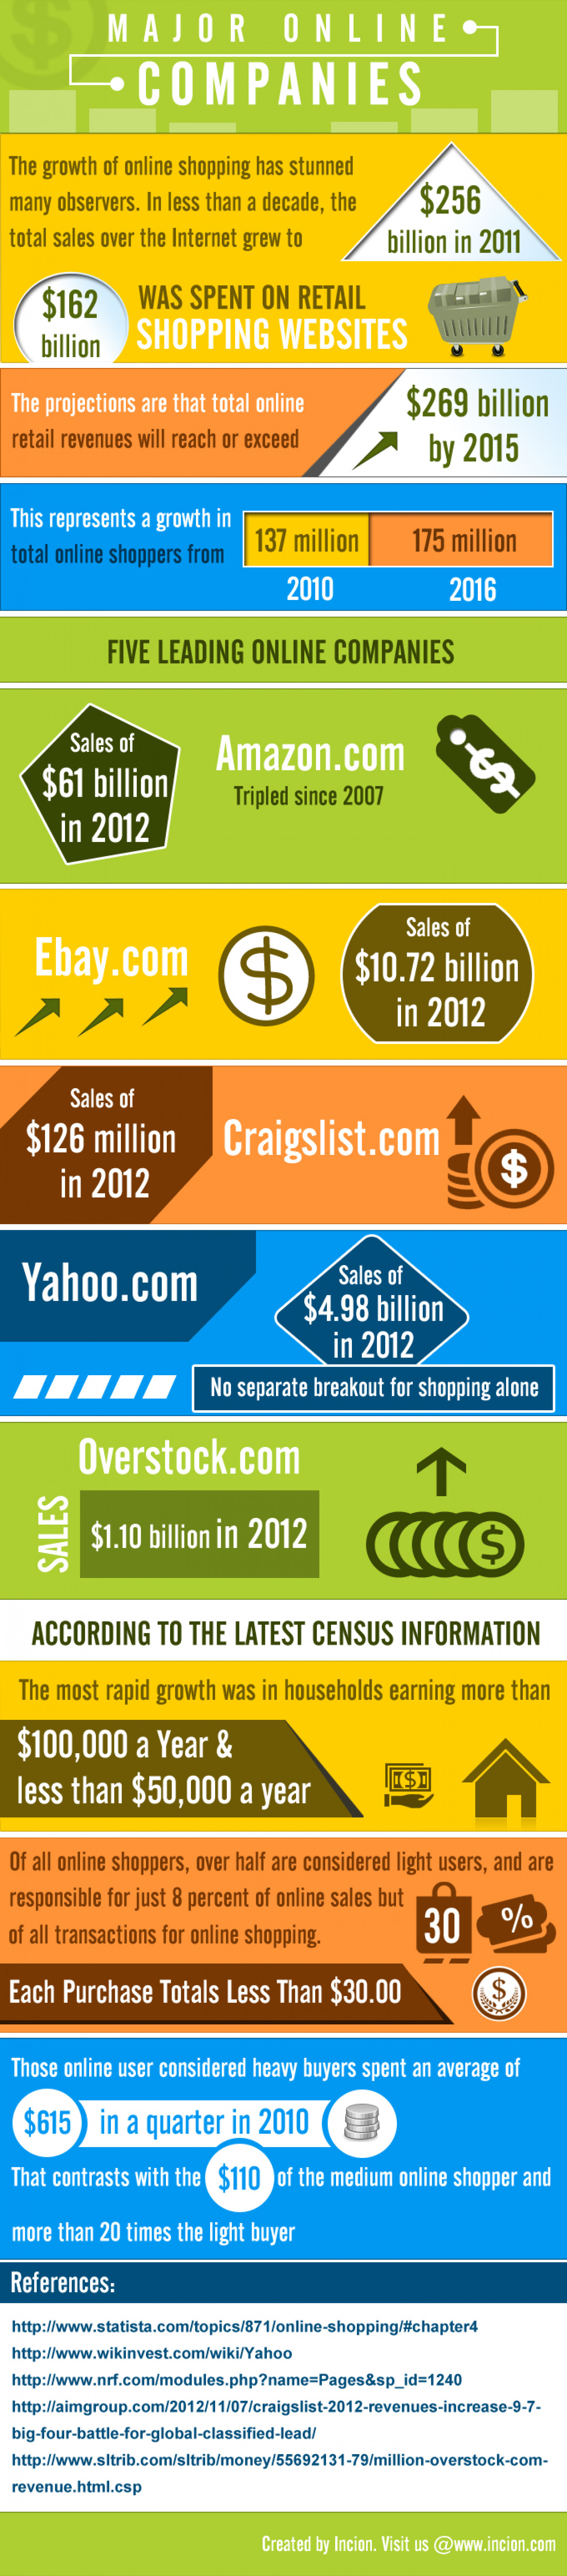 Major Online Companies  Infographic